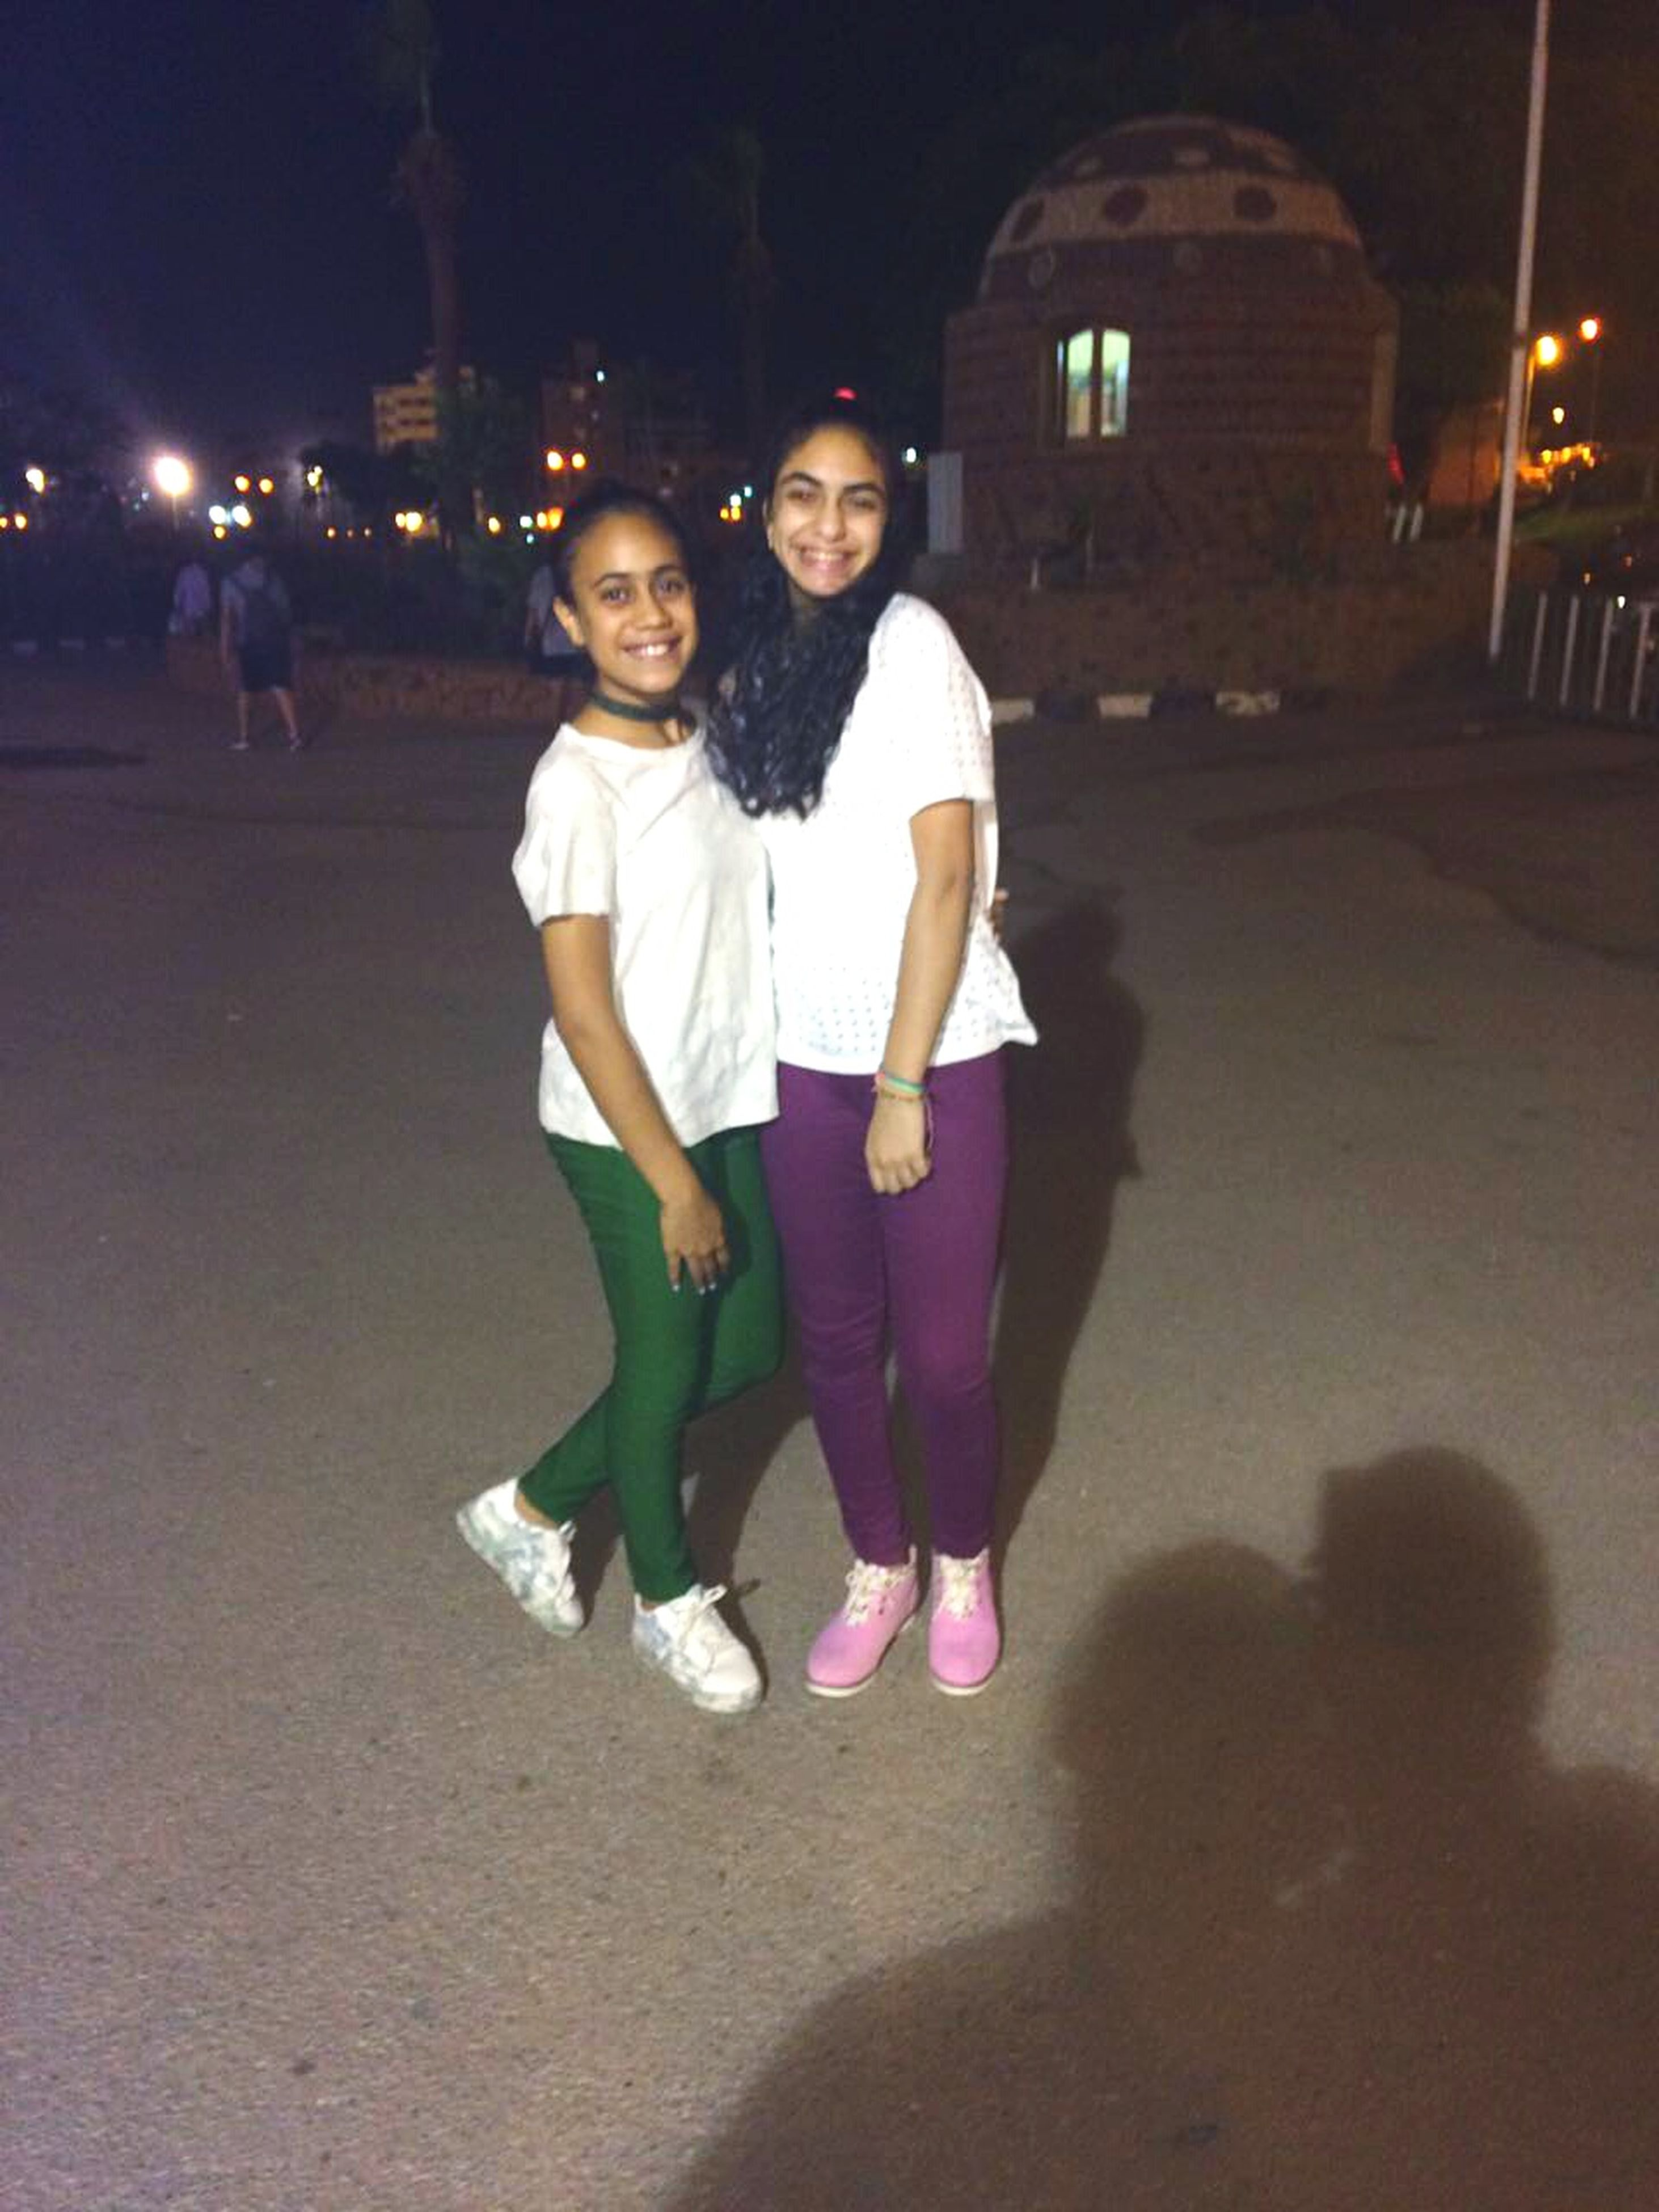 full length, looking at camera, night, togetherness, smiling, happiness, lifestyles, real people, portrait, illuminated, two people, front view, love, outdoors, leisure activity, young adult, building exterior, architecture, young women, built structure, standing, bonding, cheerful, city, friendship, people, adult